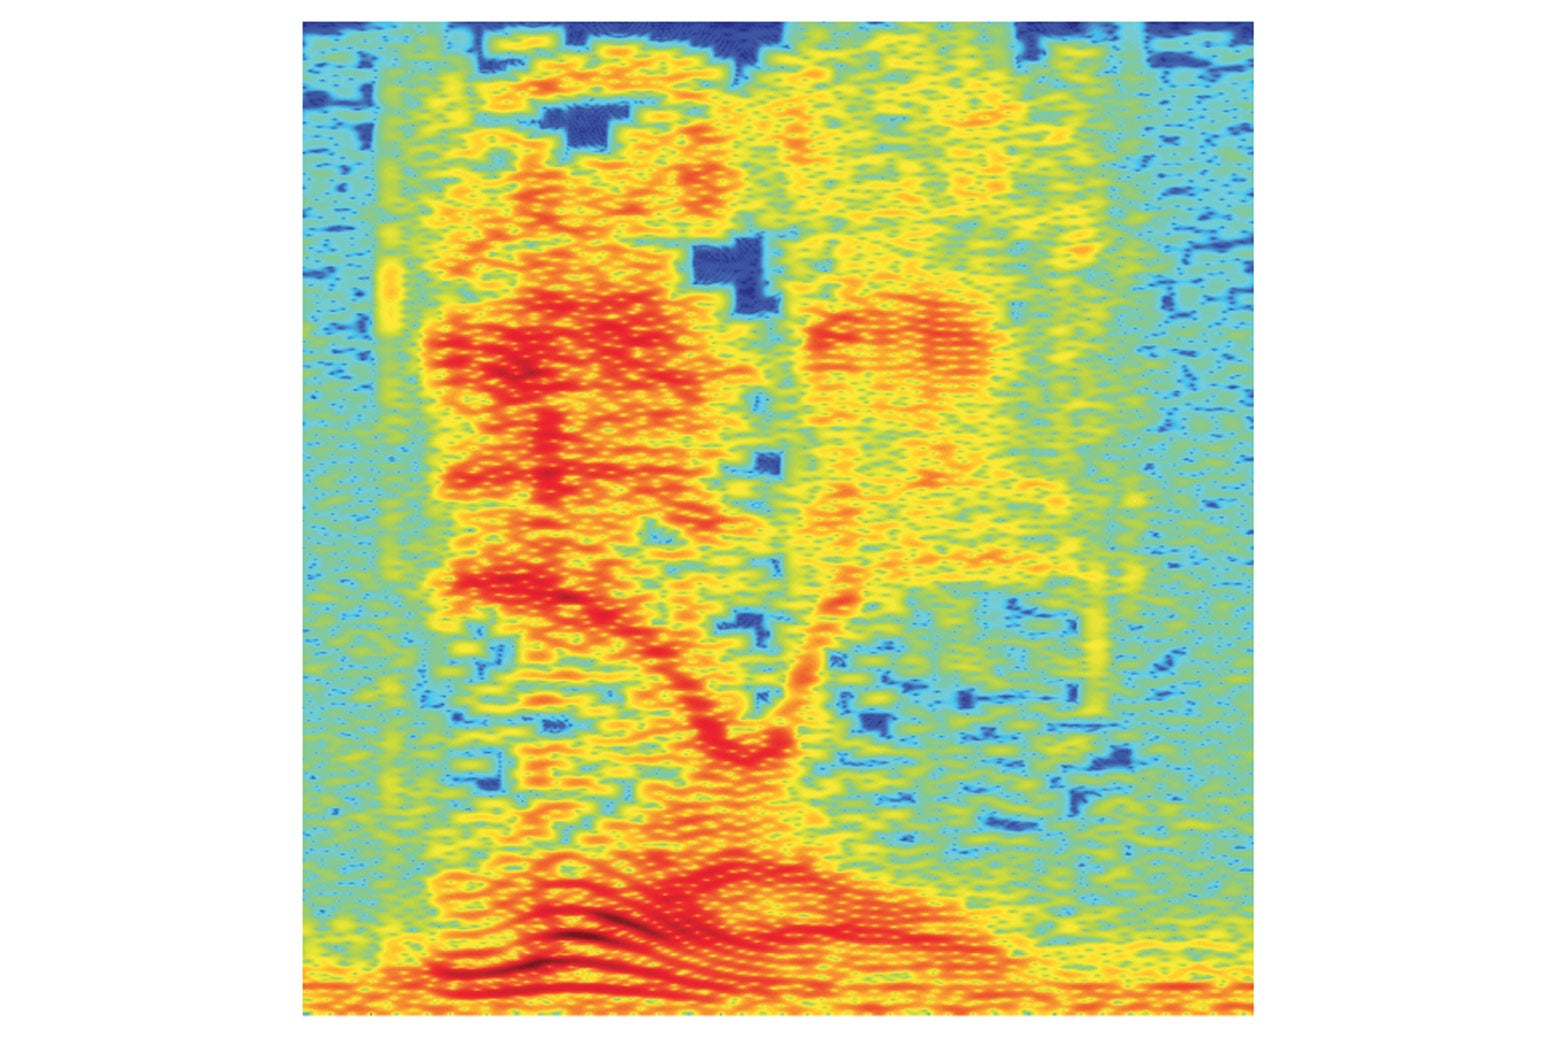 A spectrogram of the audio.